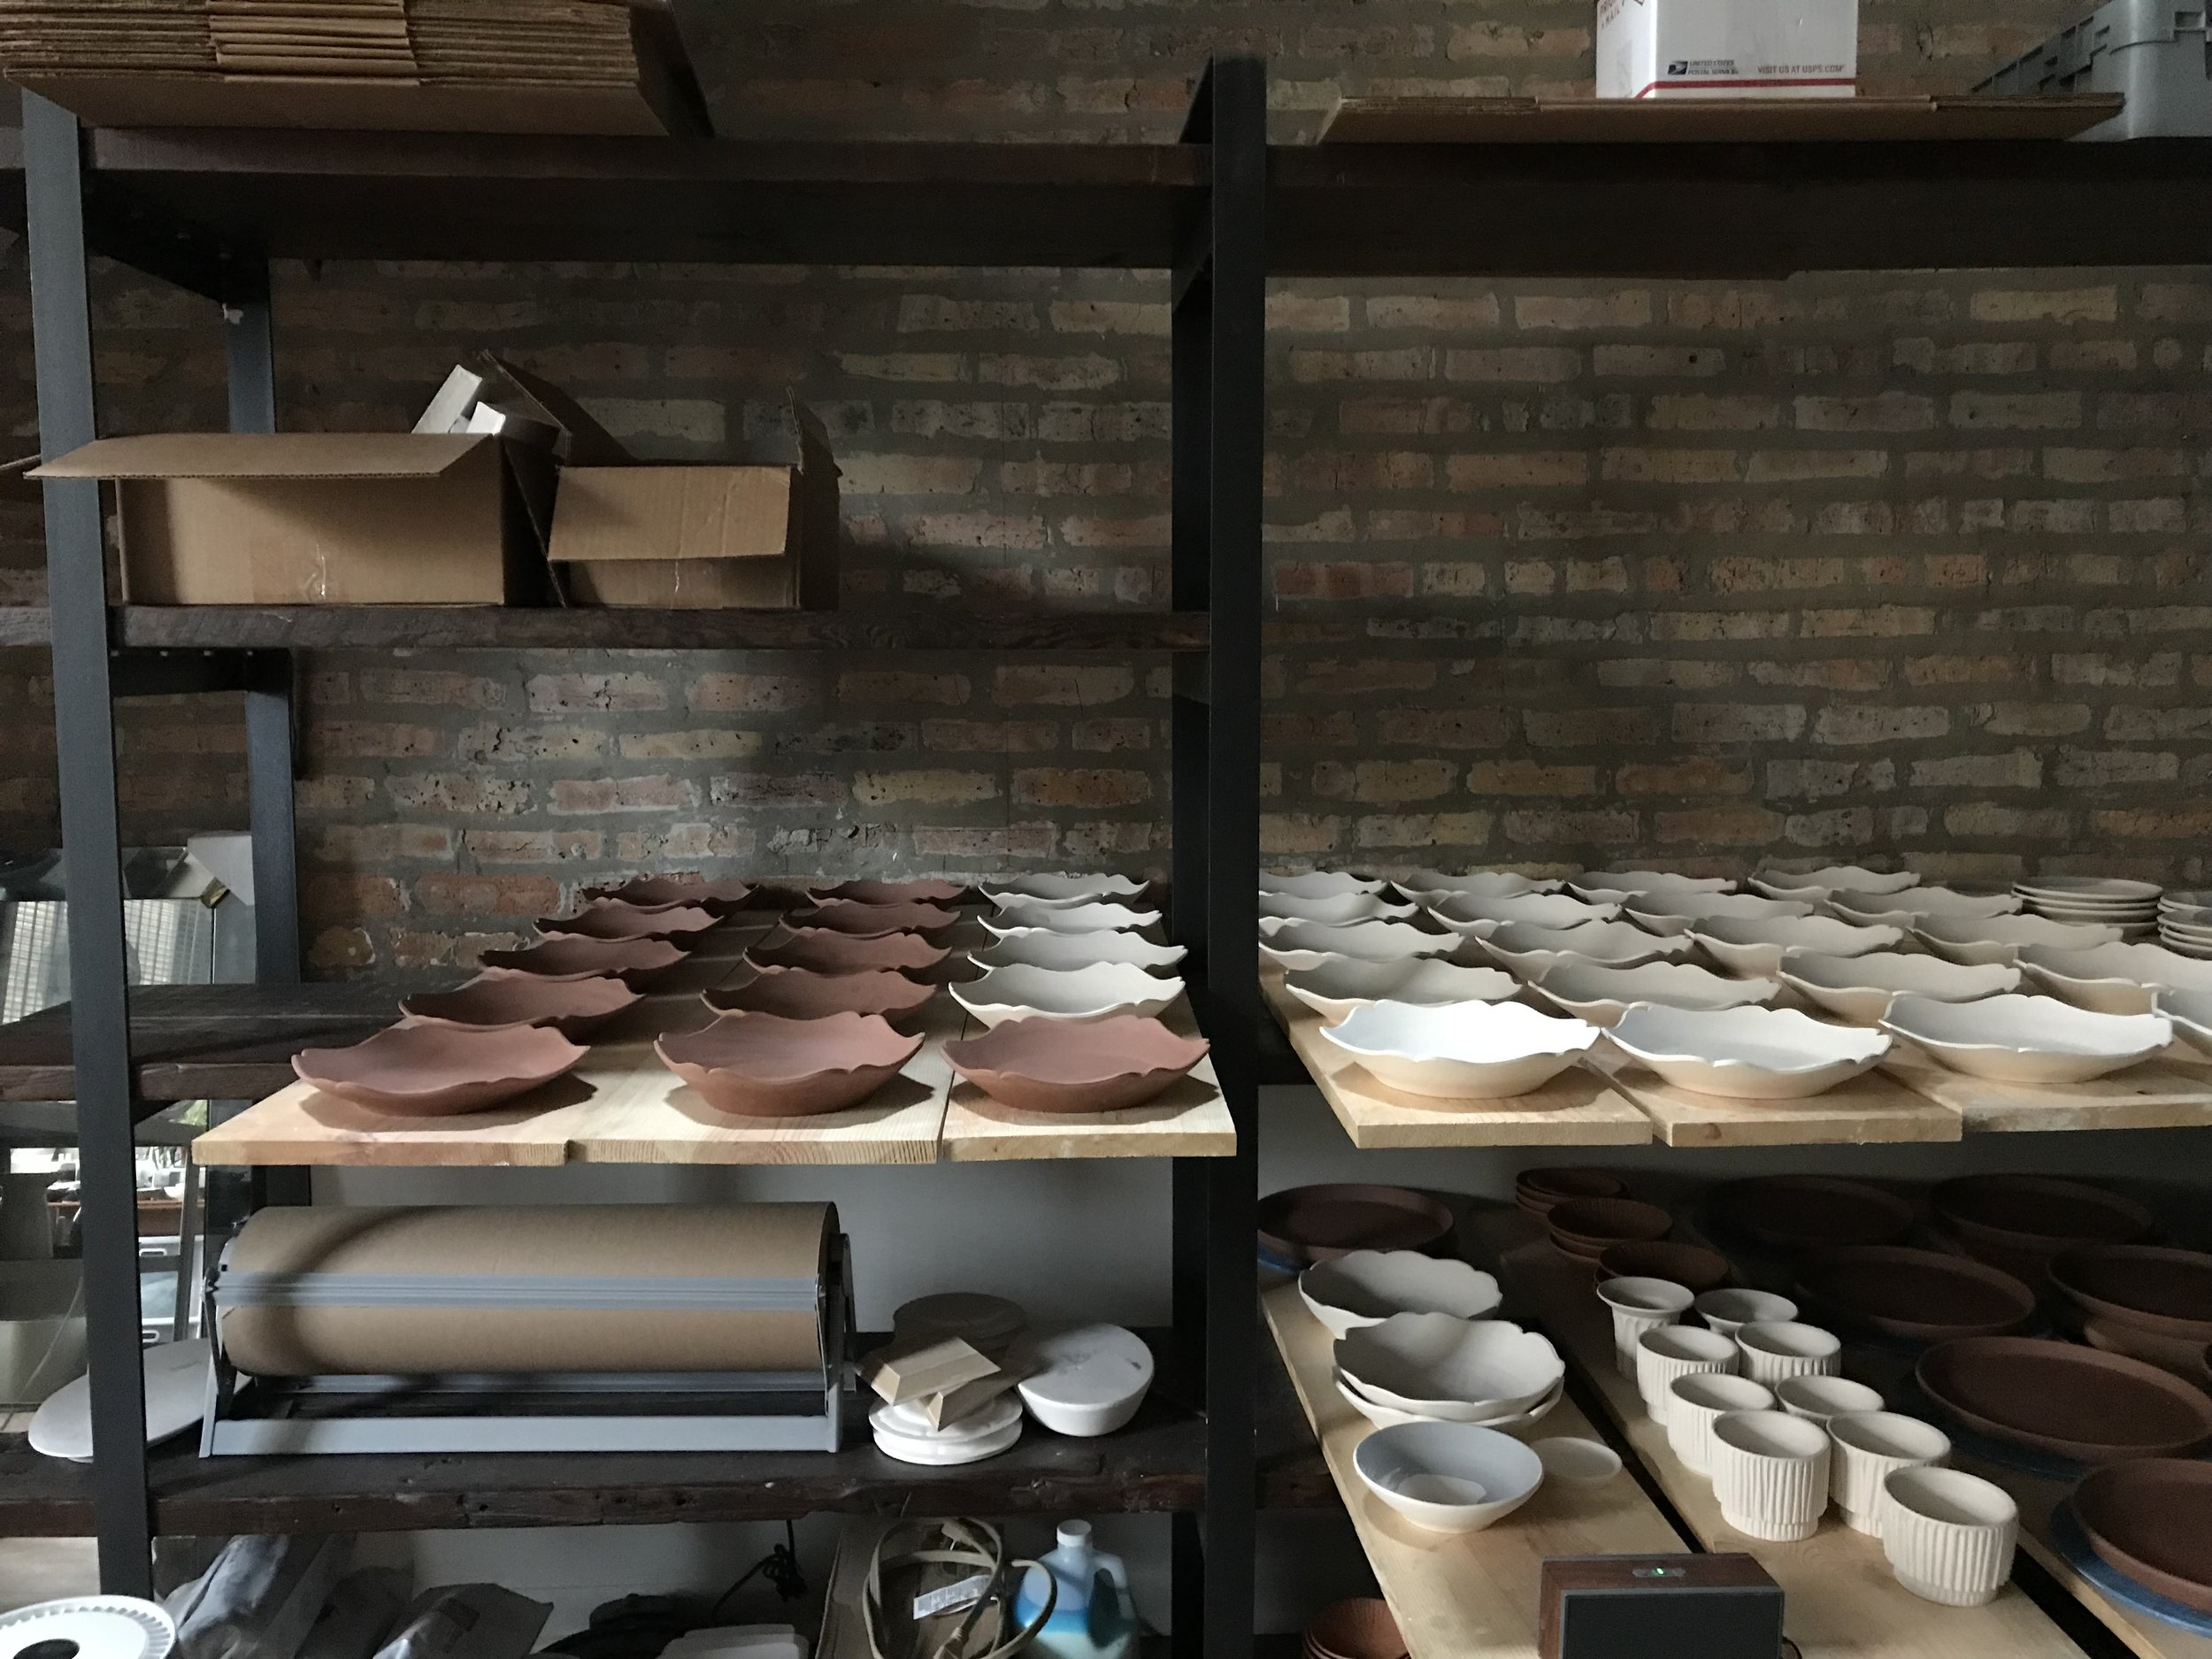 The finished dishes drying and awaiting their first firing.